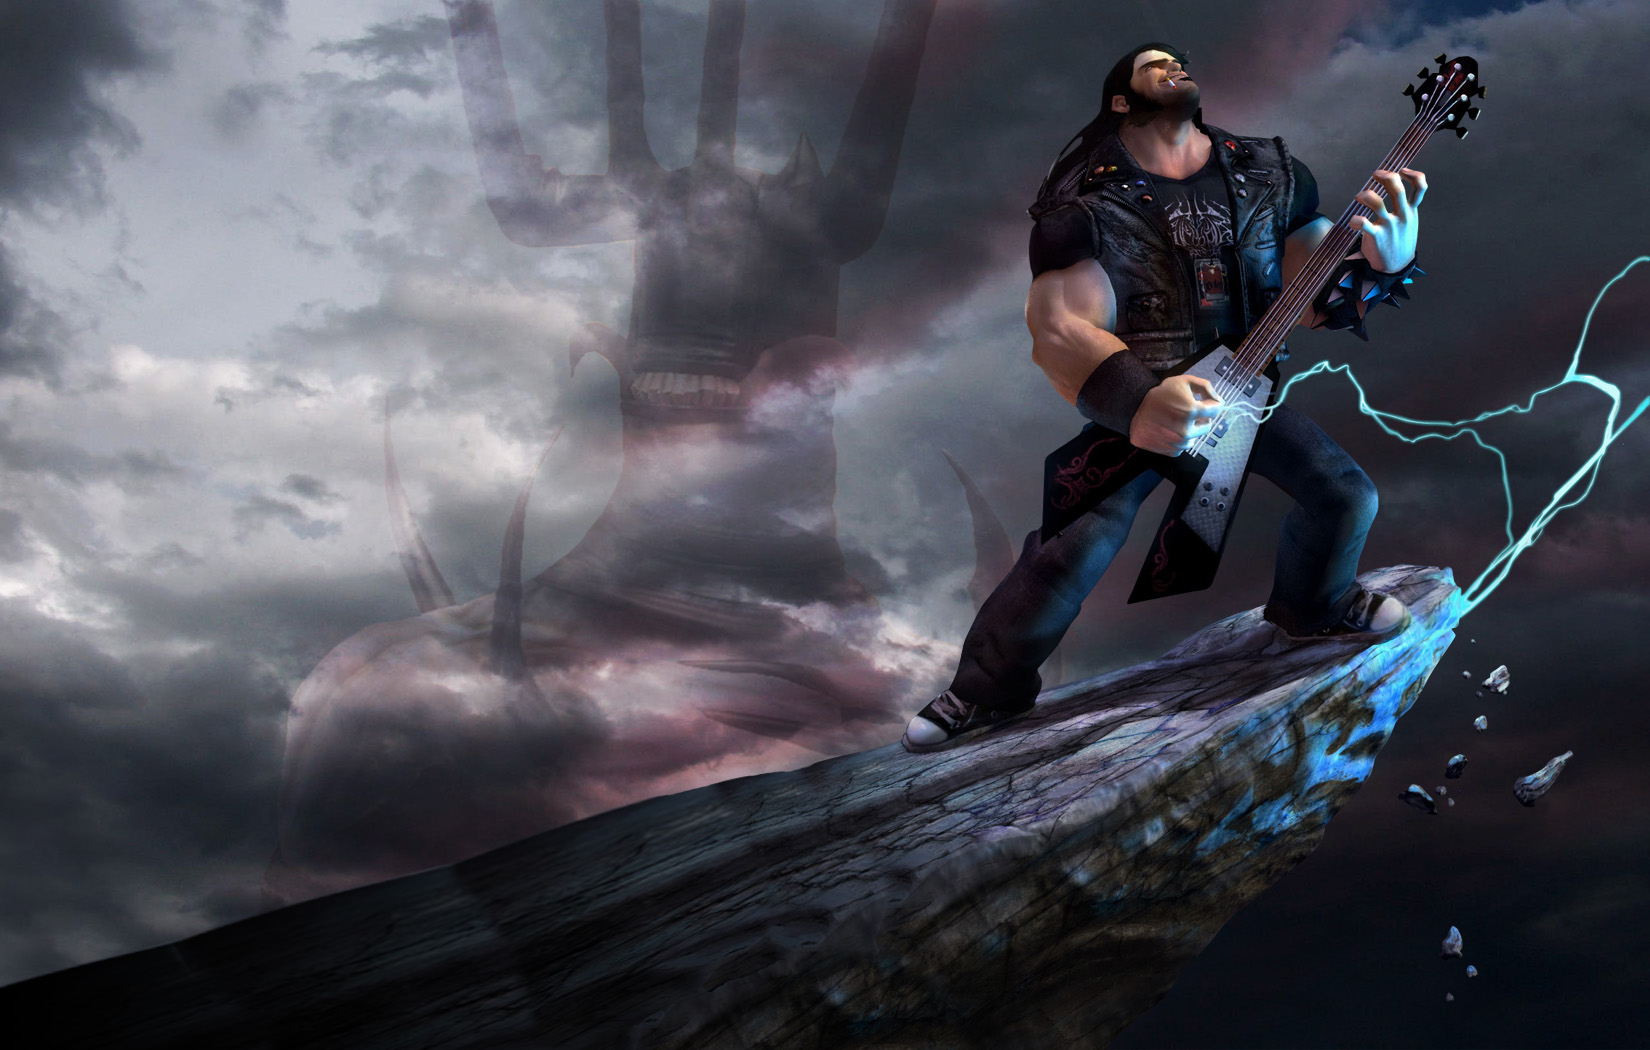 Brutal Legend Backgrounds, Compatible - PC, Mobile, Gadgets| 1650x1050 px